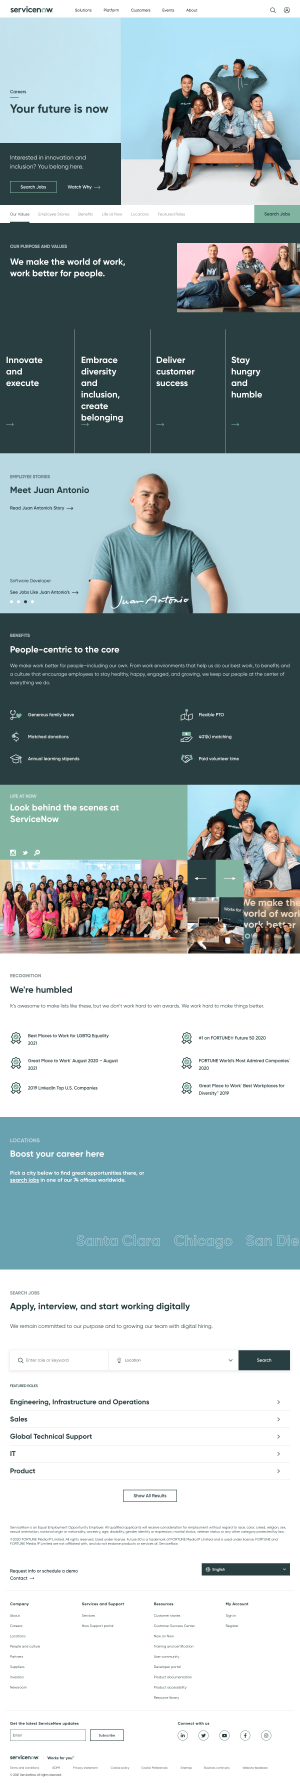 ServiceNow – Careers page